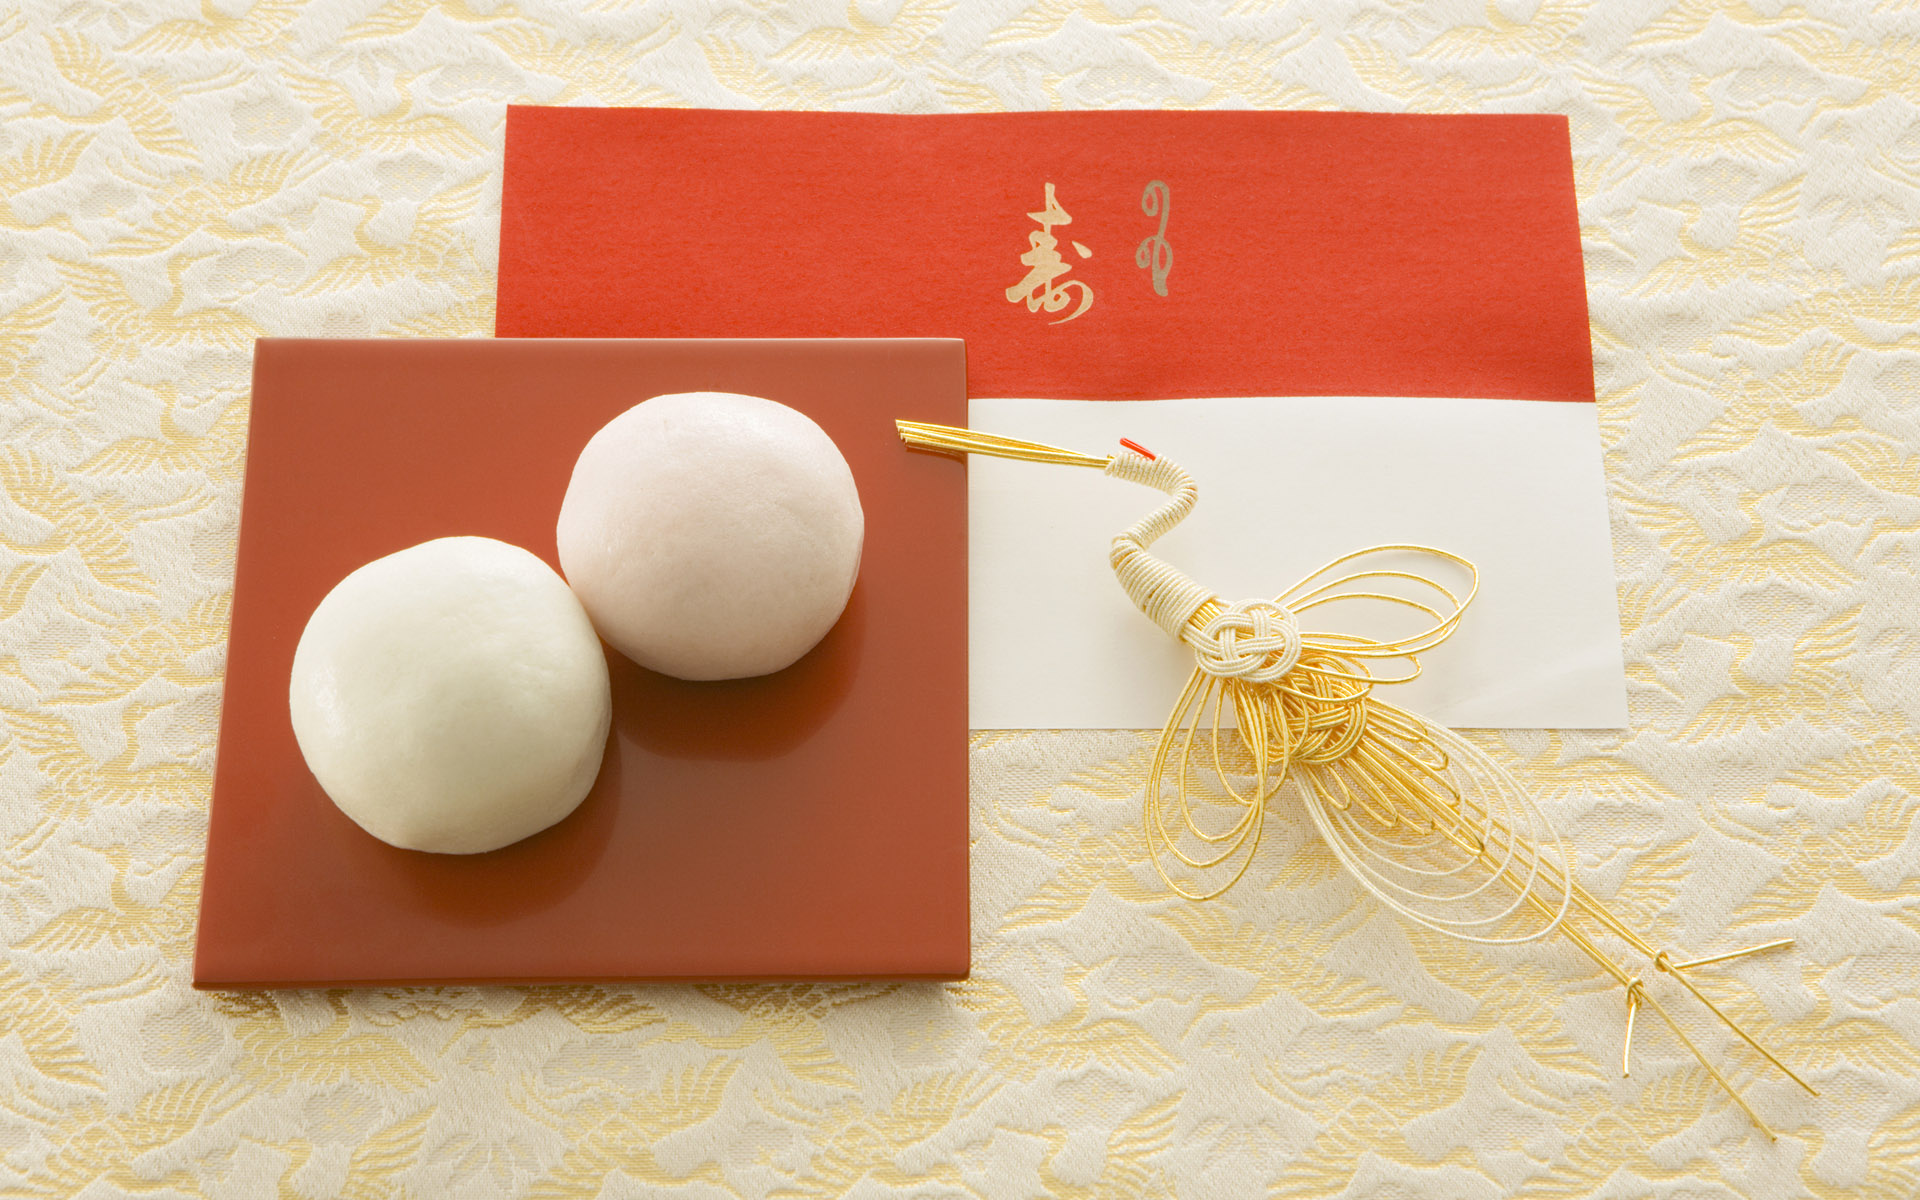 Japanese New Year and cultural material 9866